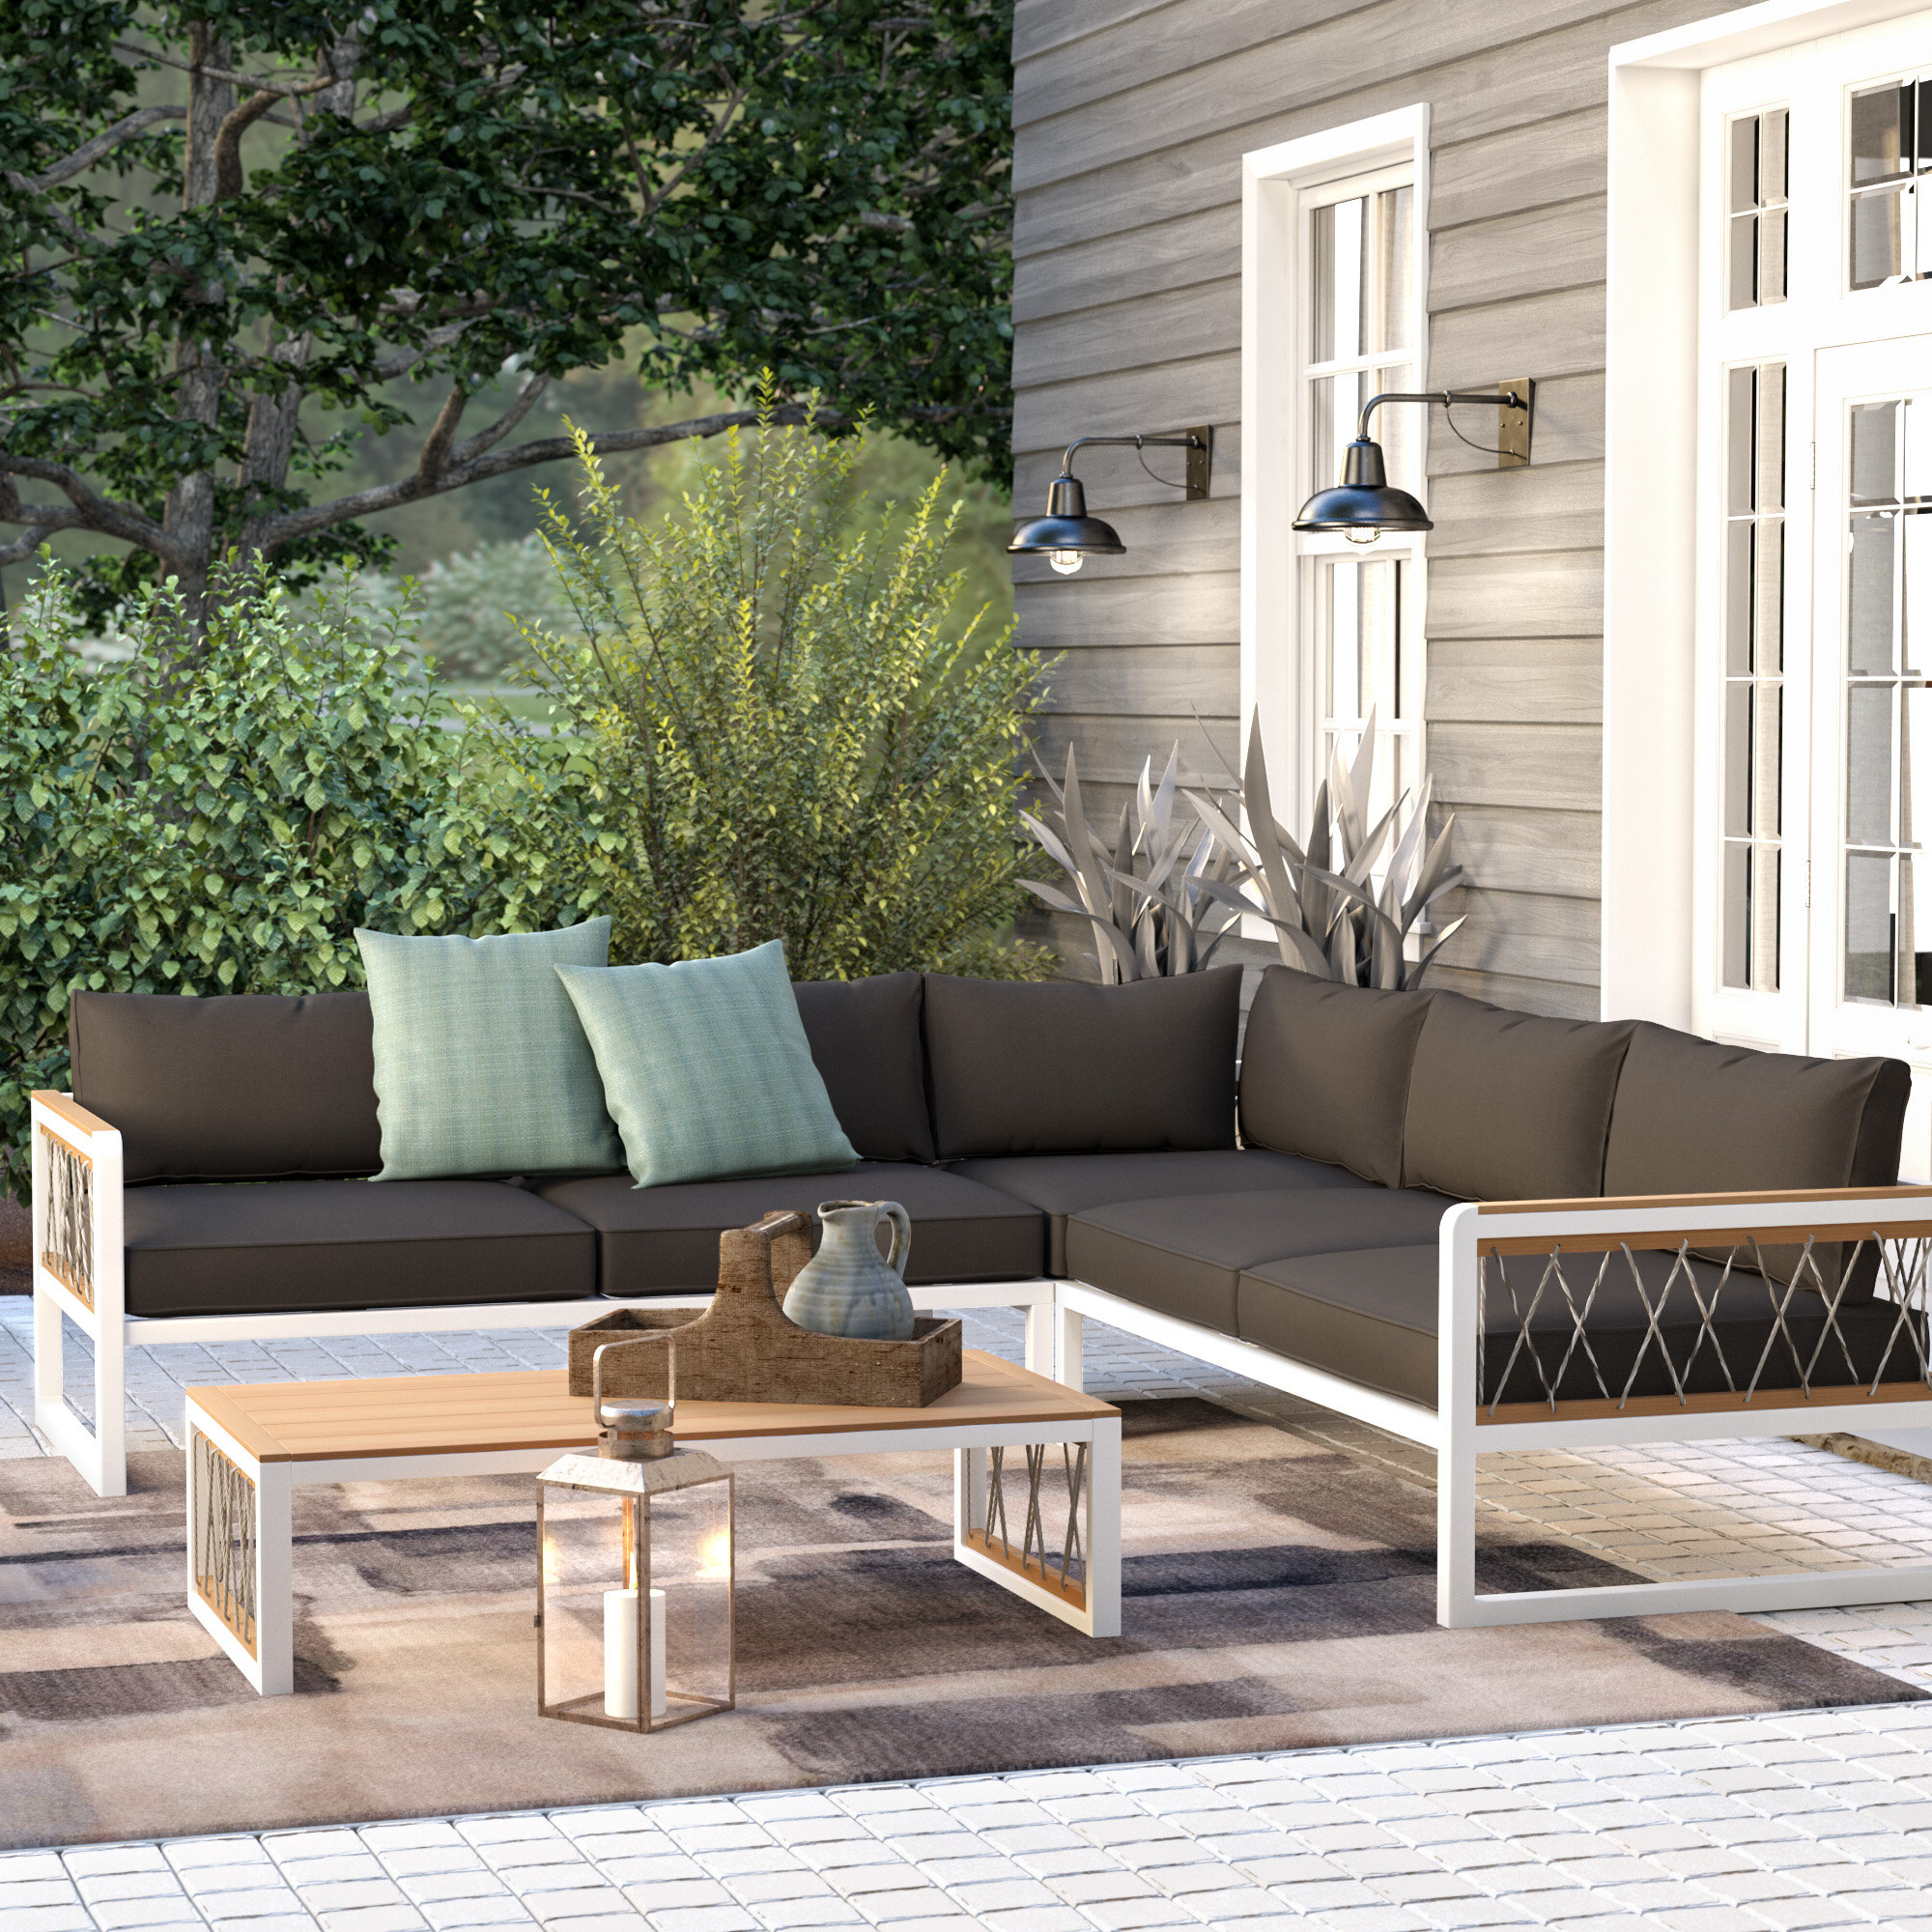 2019 Olinda 3 Piece Sectionals Seating Group With Cushions For Anoop 4 Piece Sectional Seating Group With Cushions (View 10 of 25)